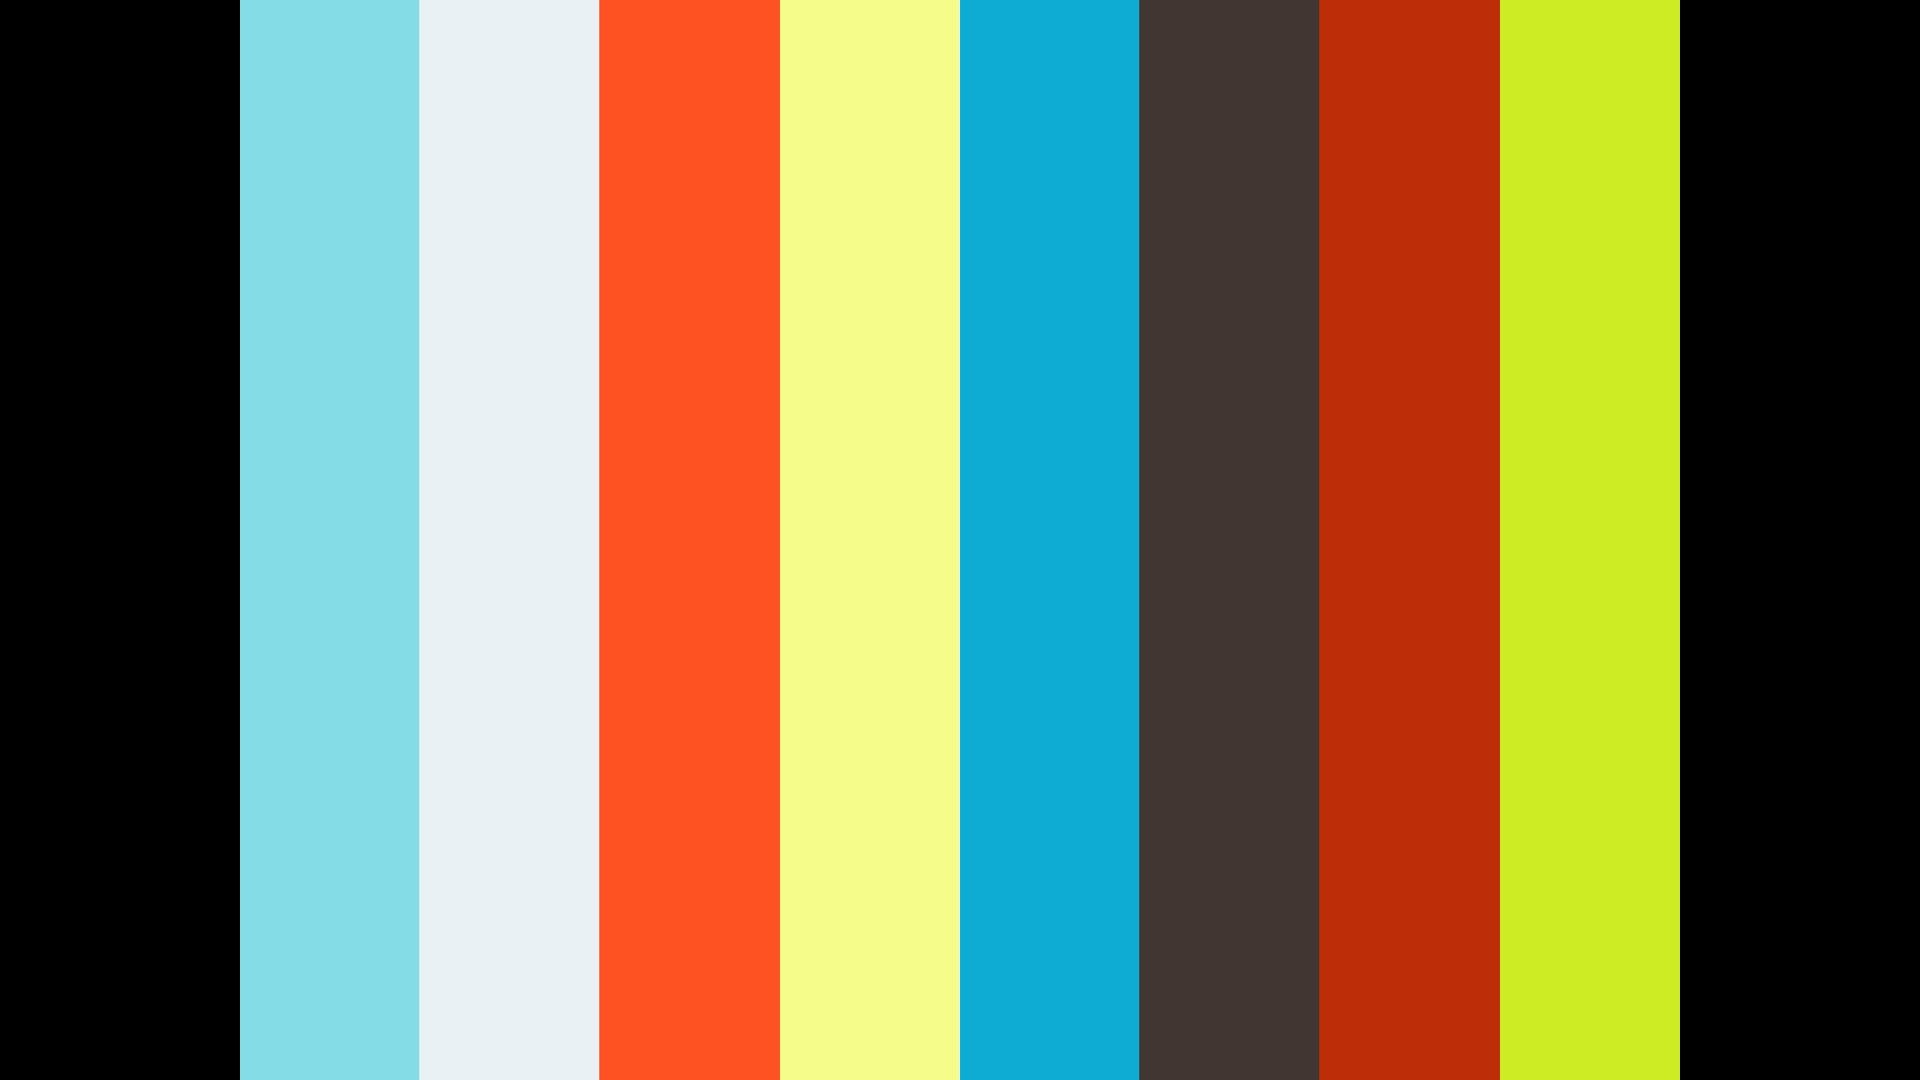 Zacuto Recoil Rig for Sony FS7 and FS7 II